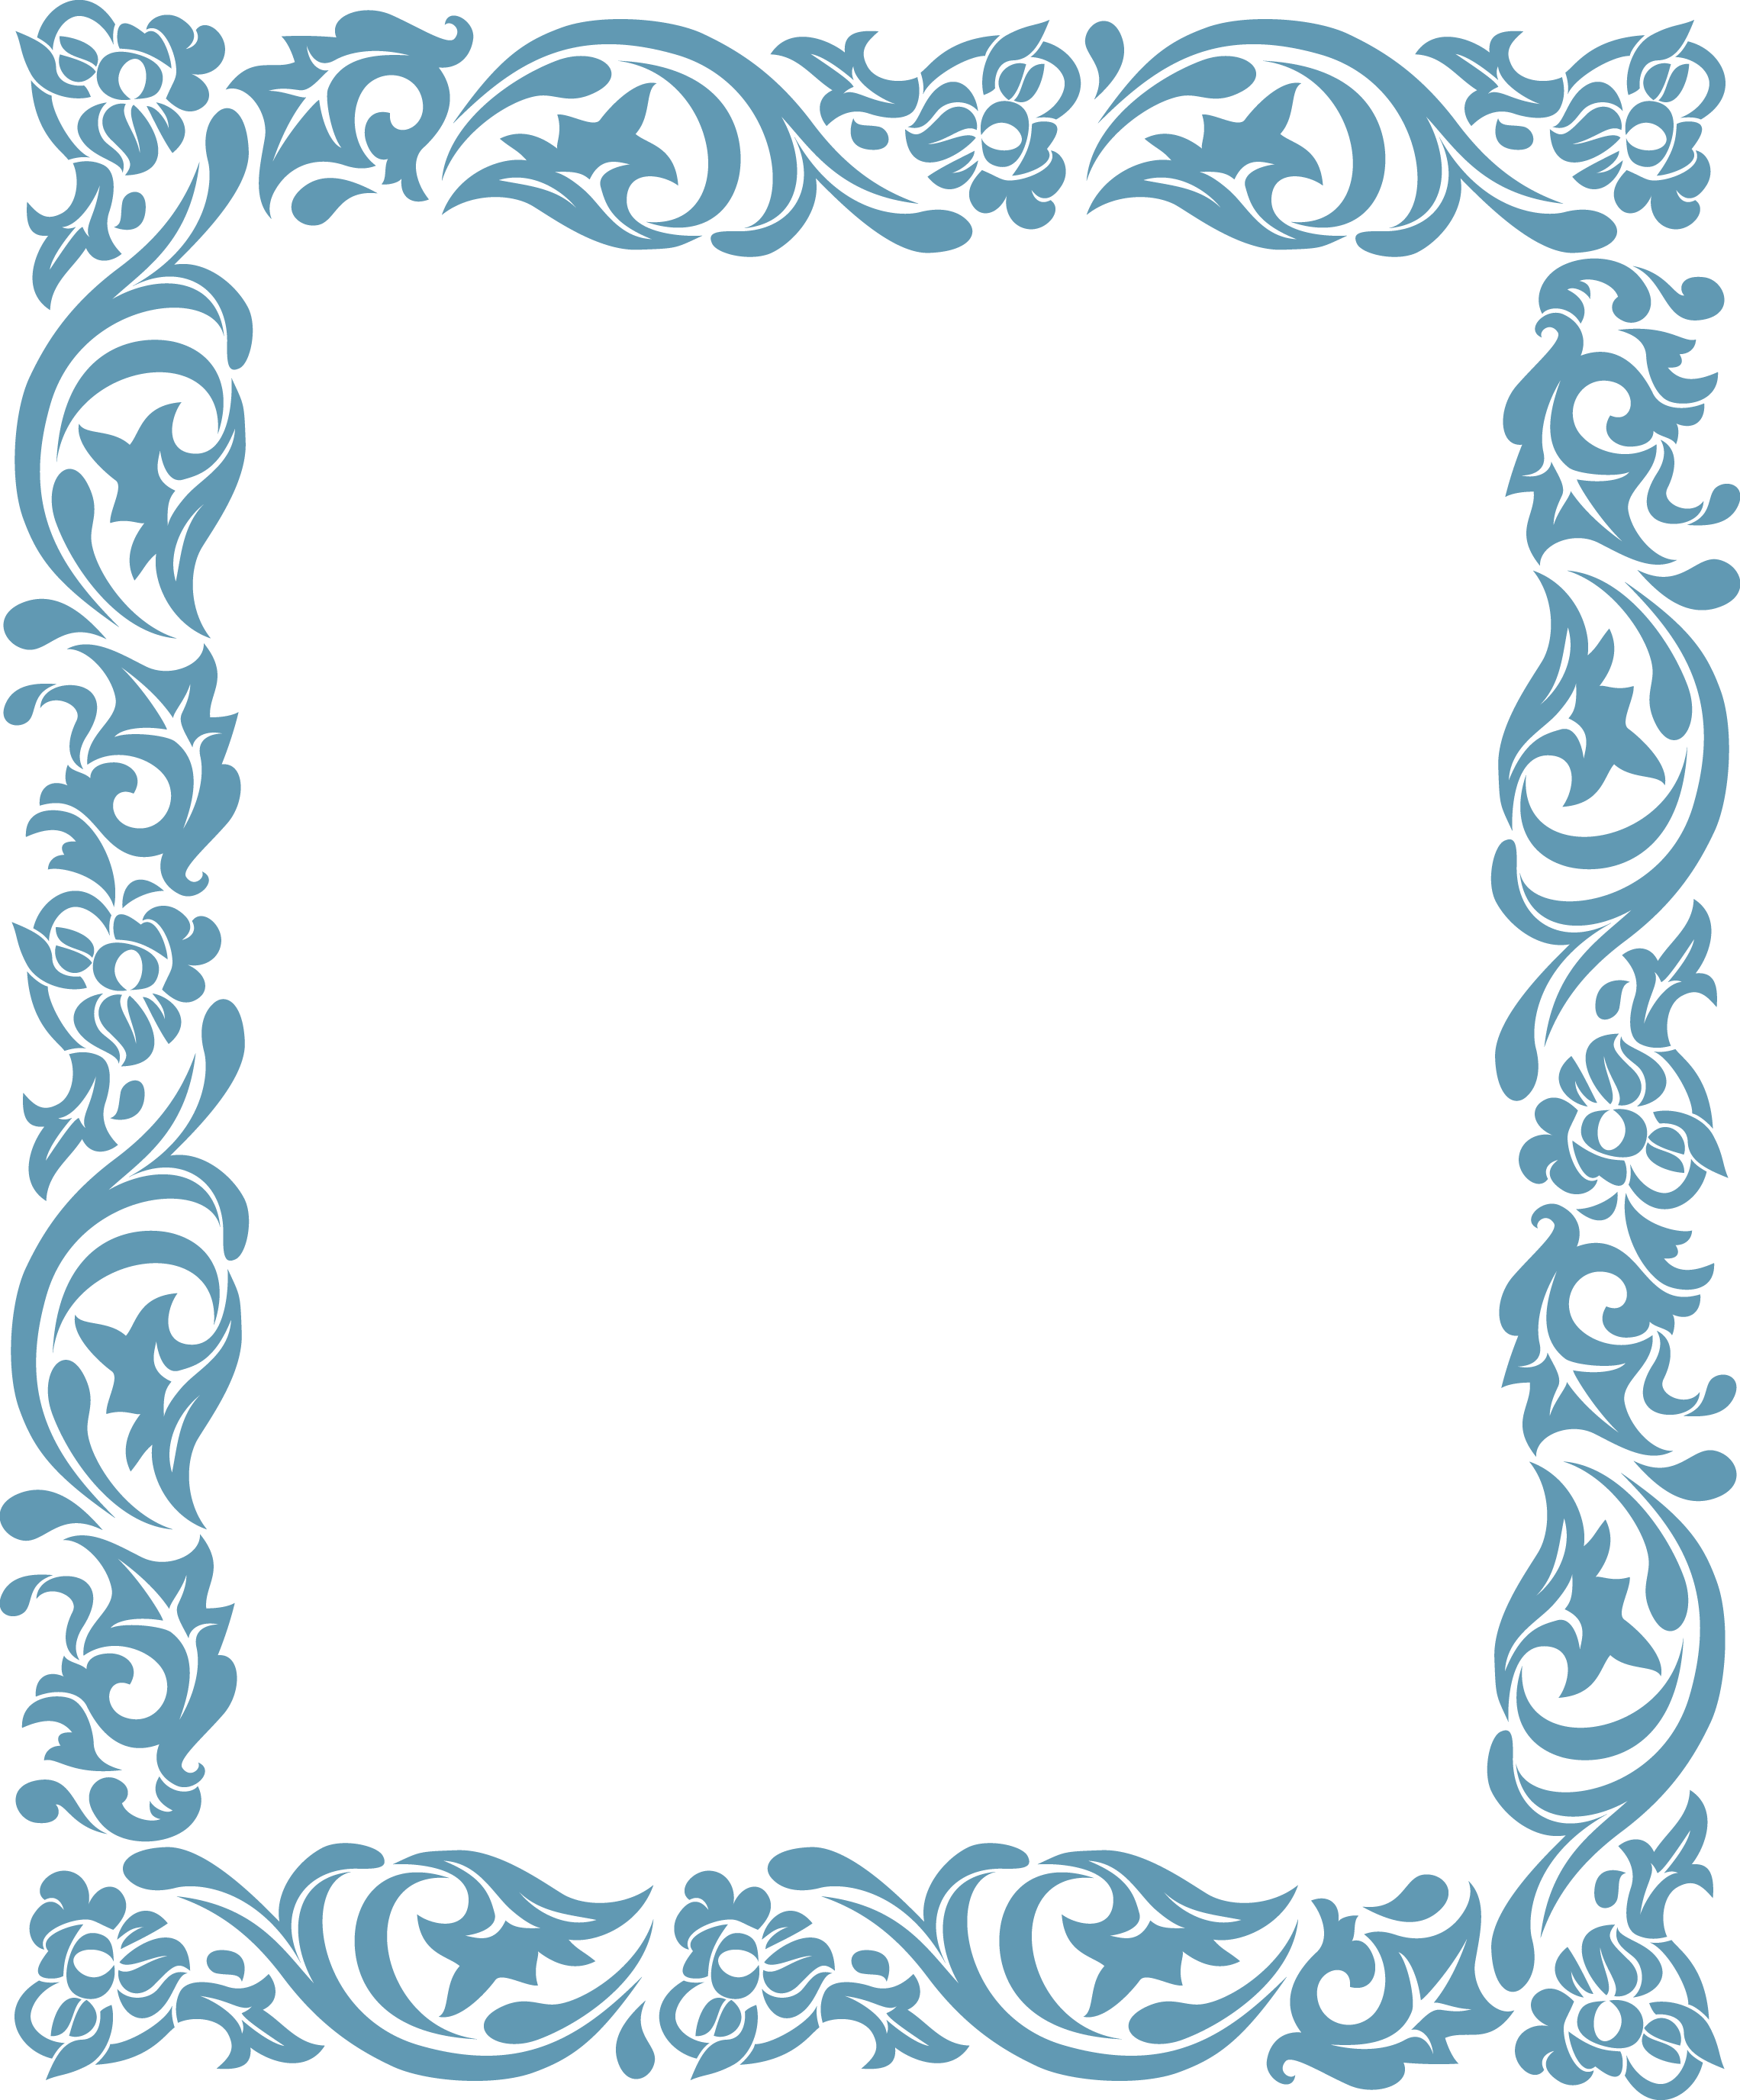 Paisley border png. Blue pattern texture poster